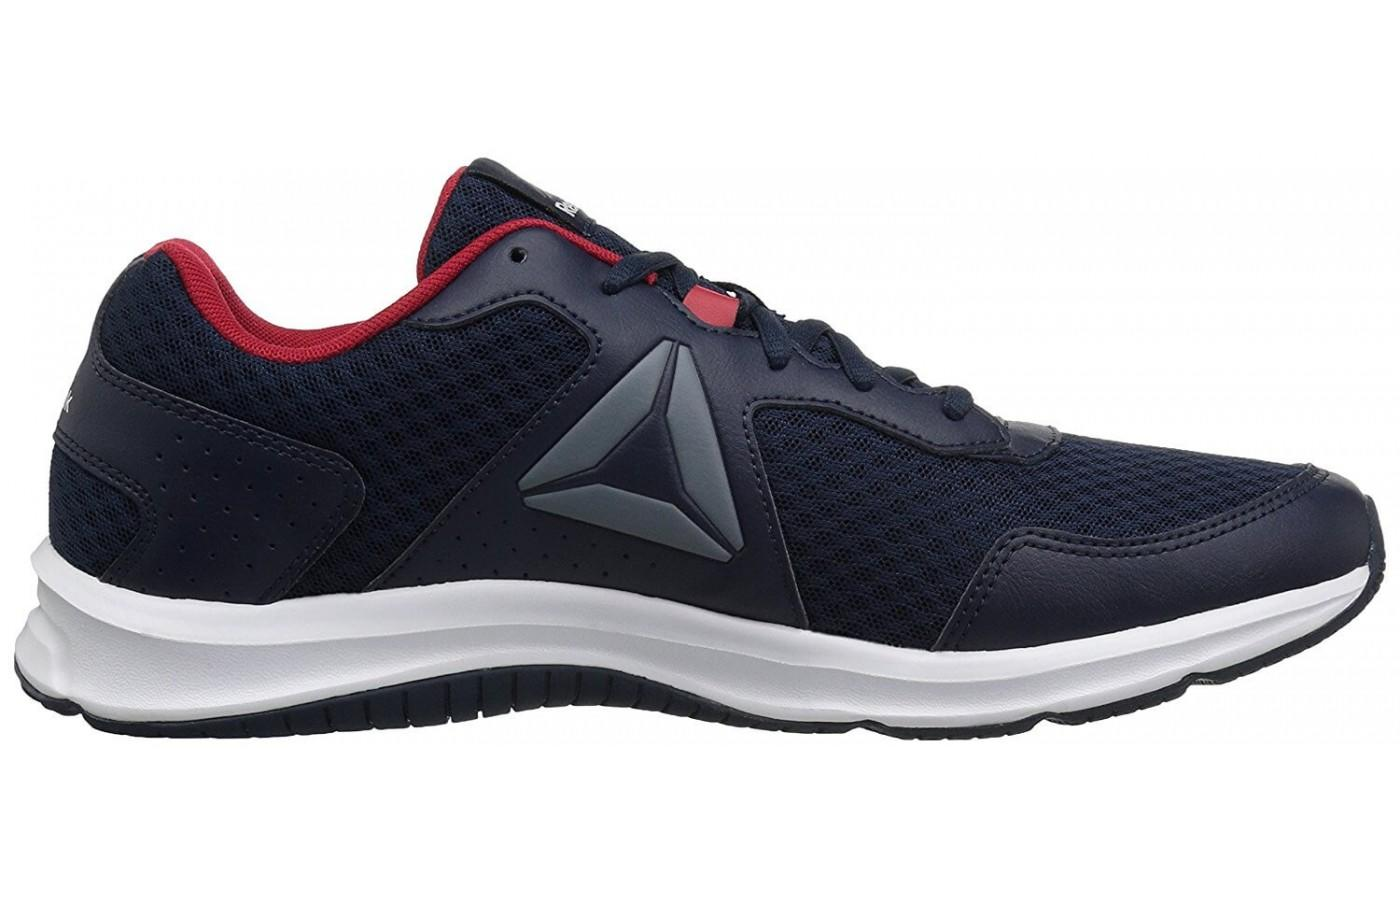 6a4cd7043a7b31 Reebok Express Runner Review - Buy or Not in Mar 2019